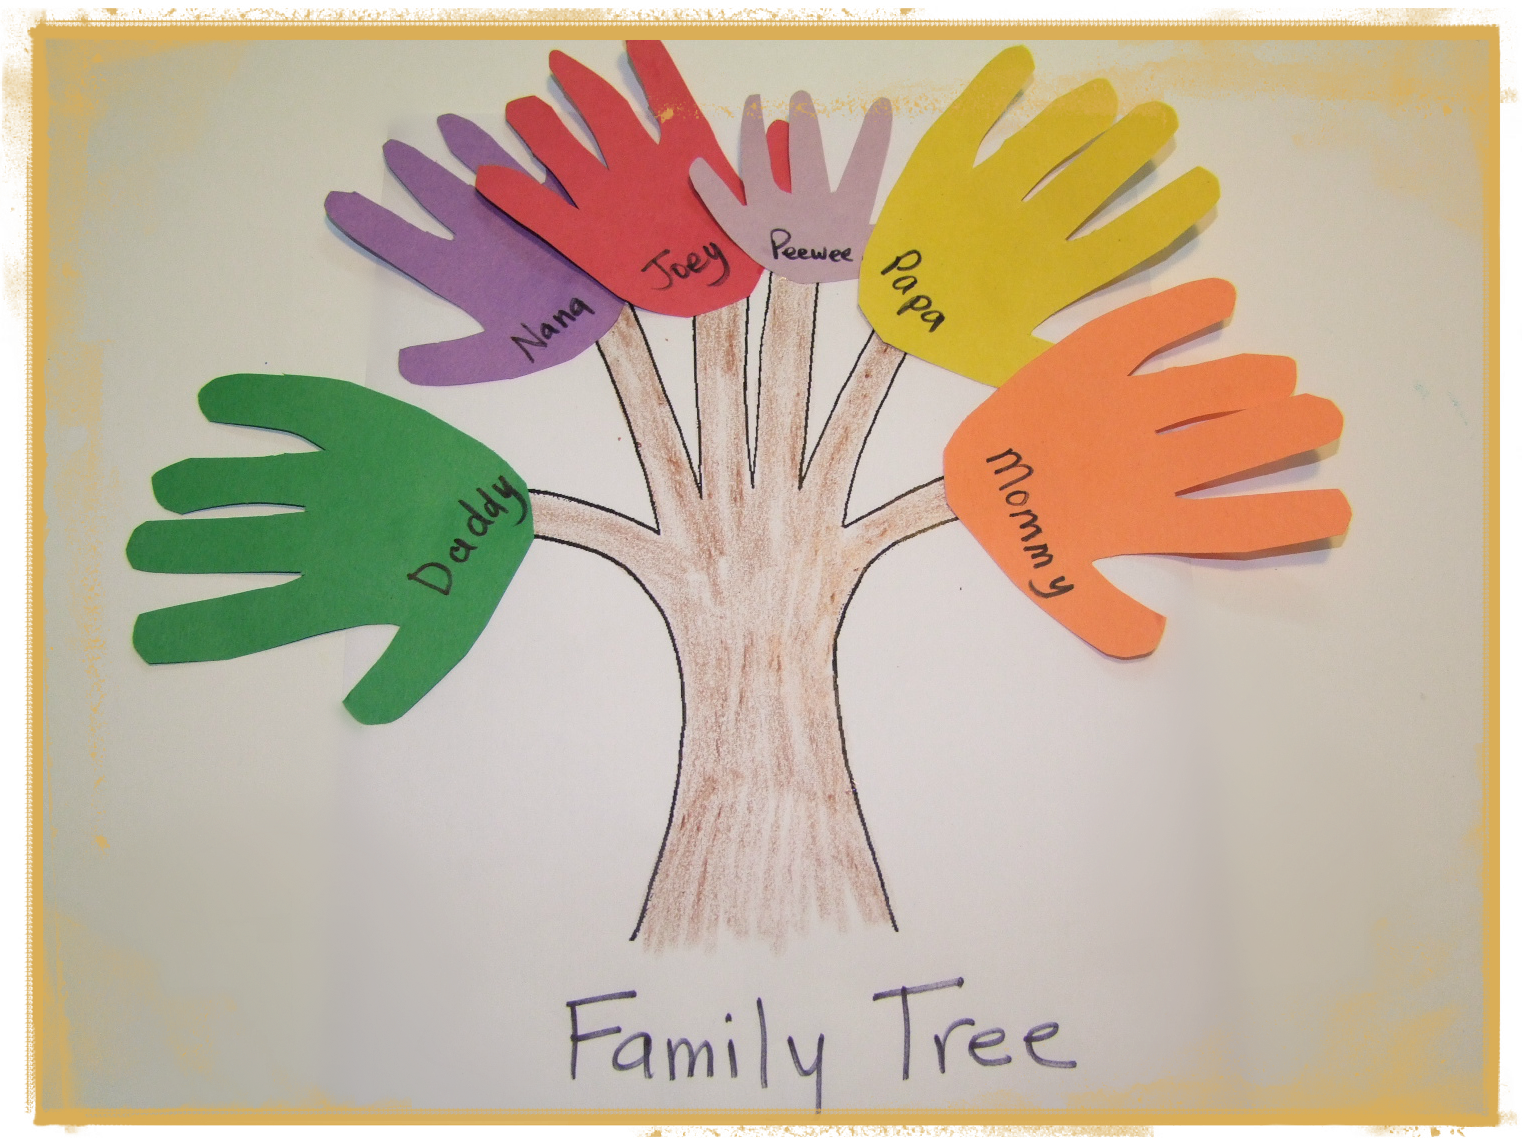 Pin by evelyn pelfort on me and my family tree pinterest for Family arts and crafts